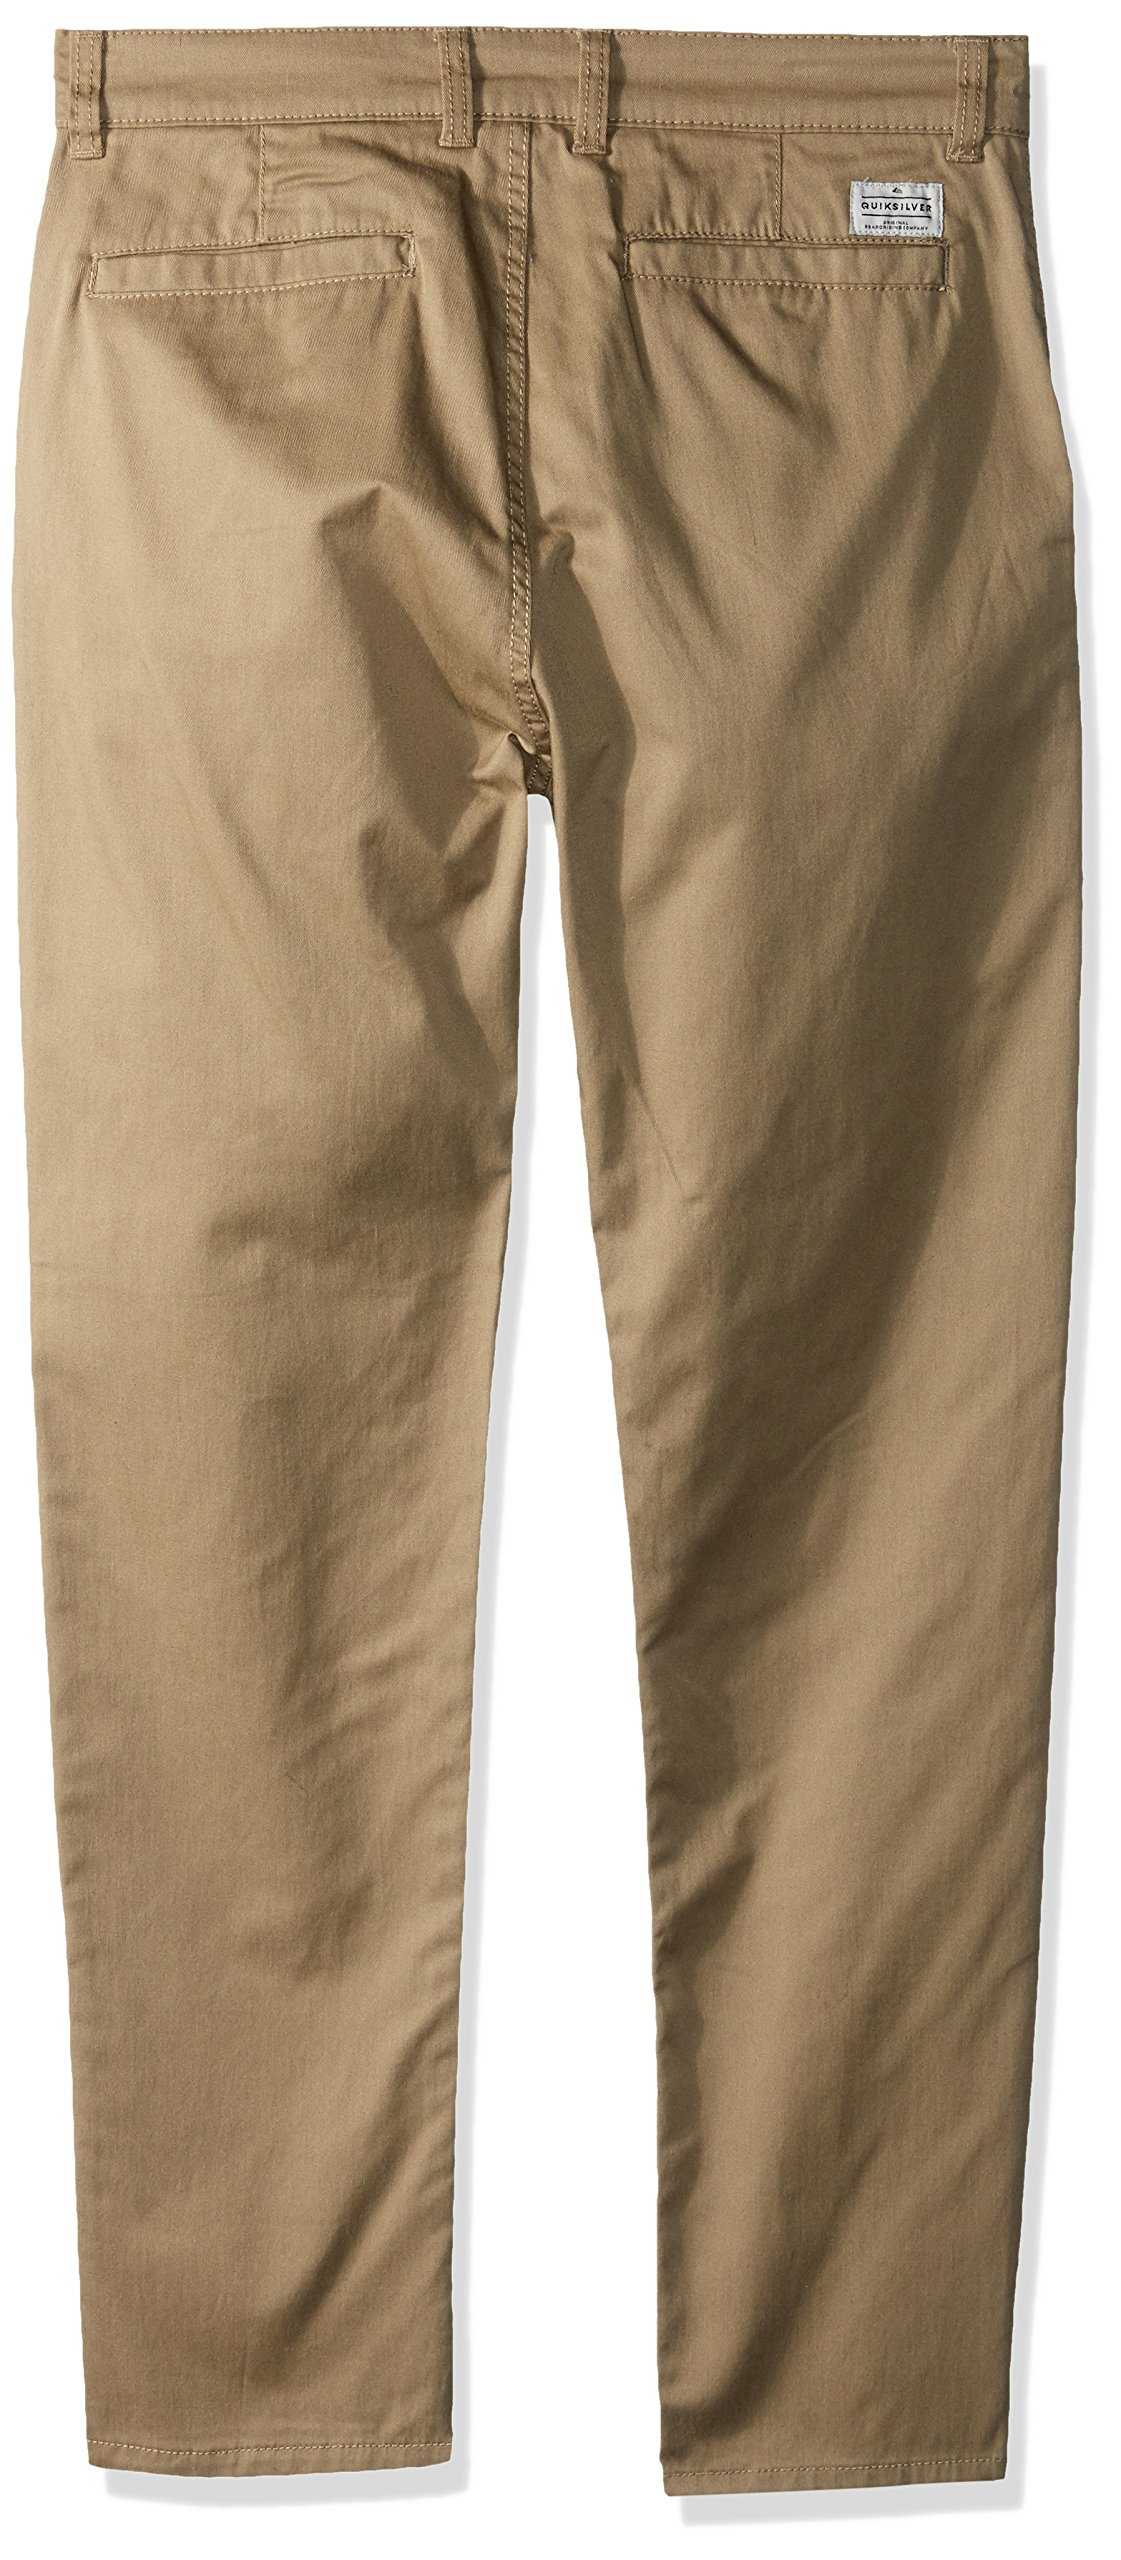 Quiksilver Boys' Big Everyday Union Youth Pants, Elmwood, 30/16 by Quiksilver (Image #2)